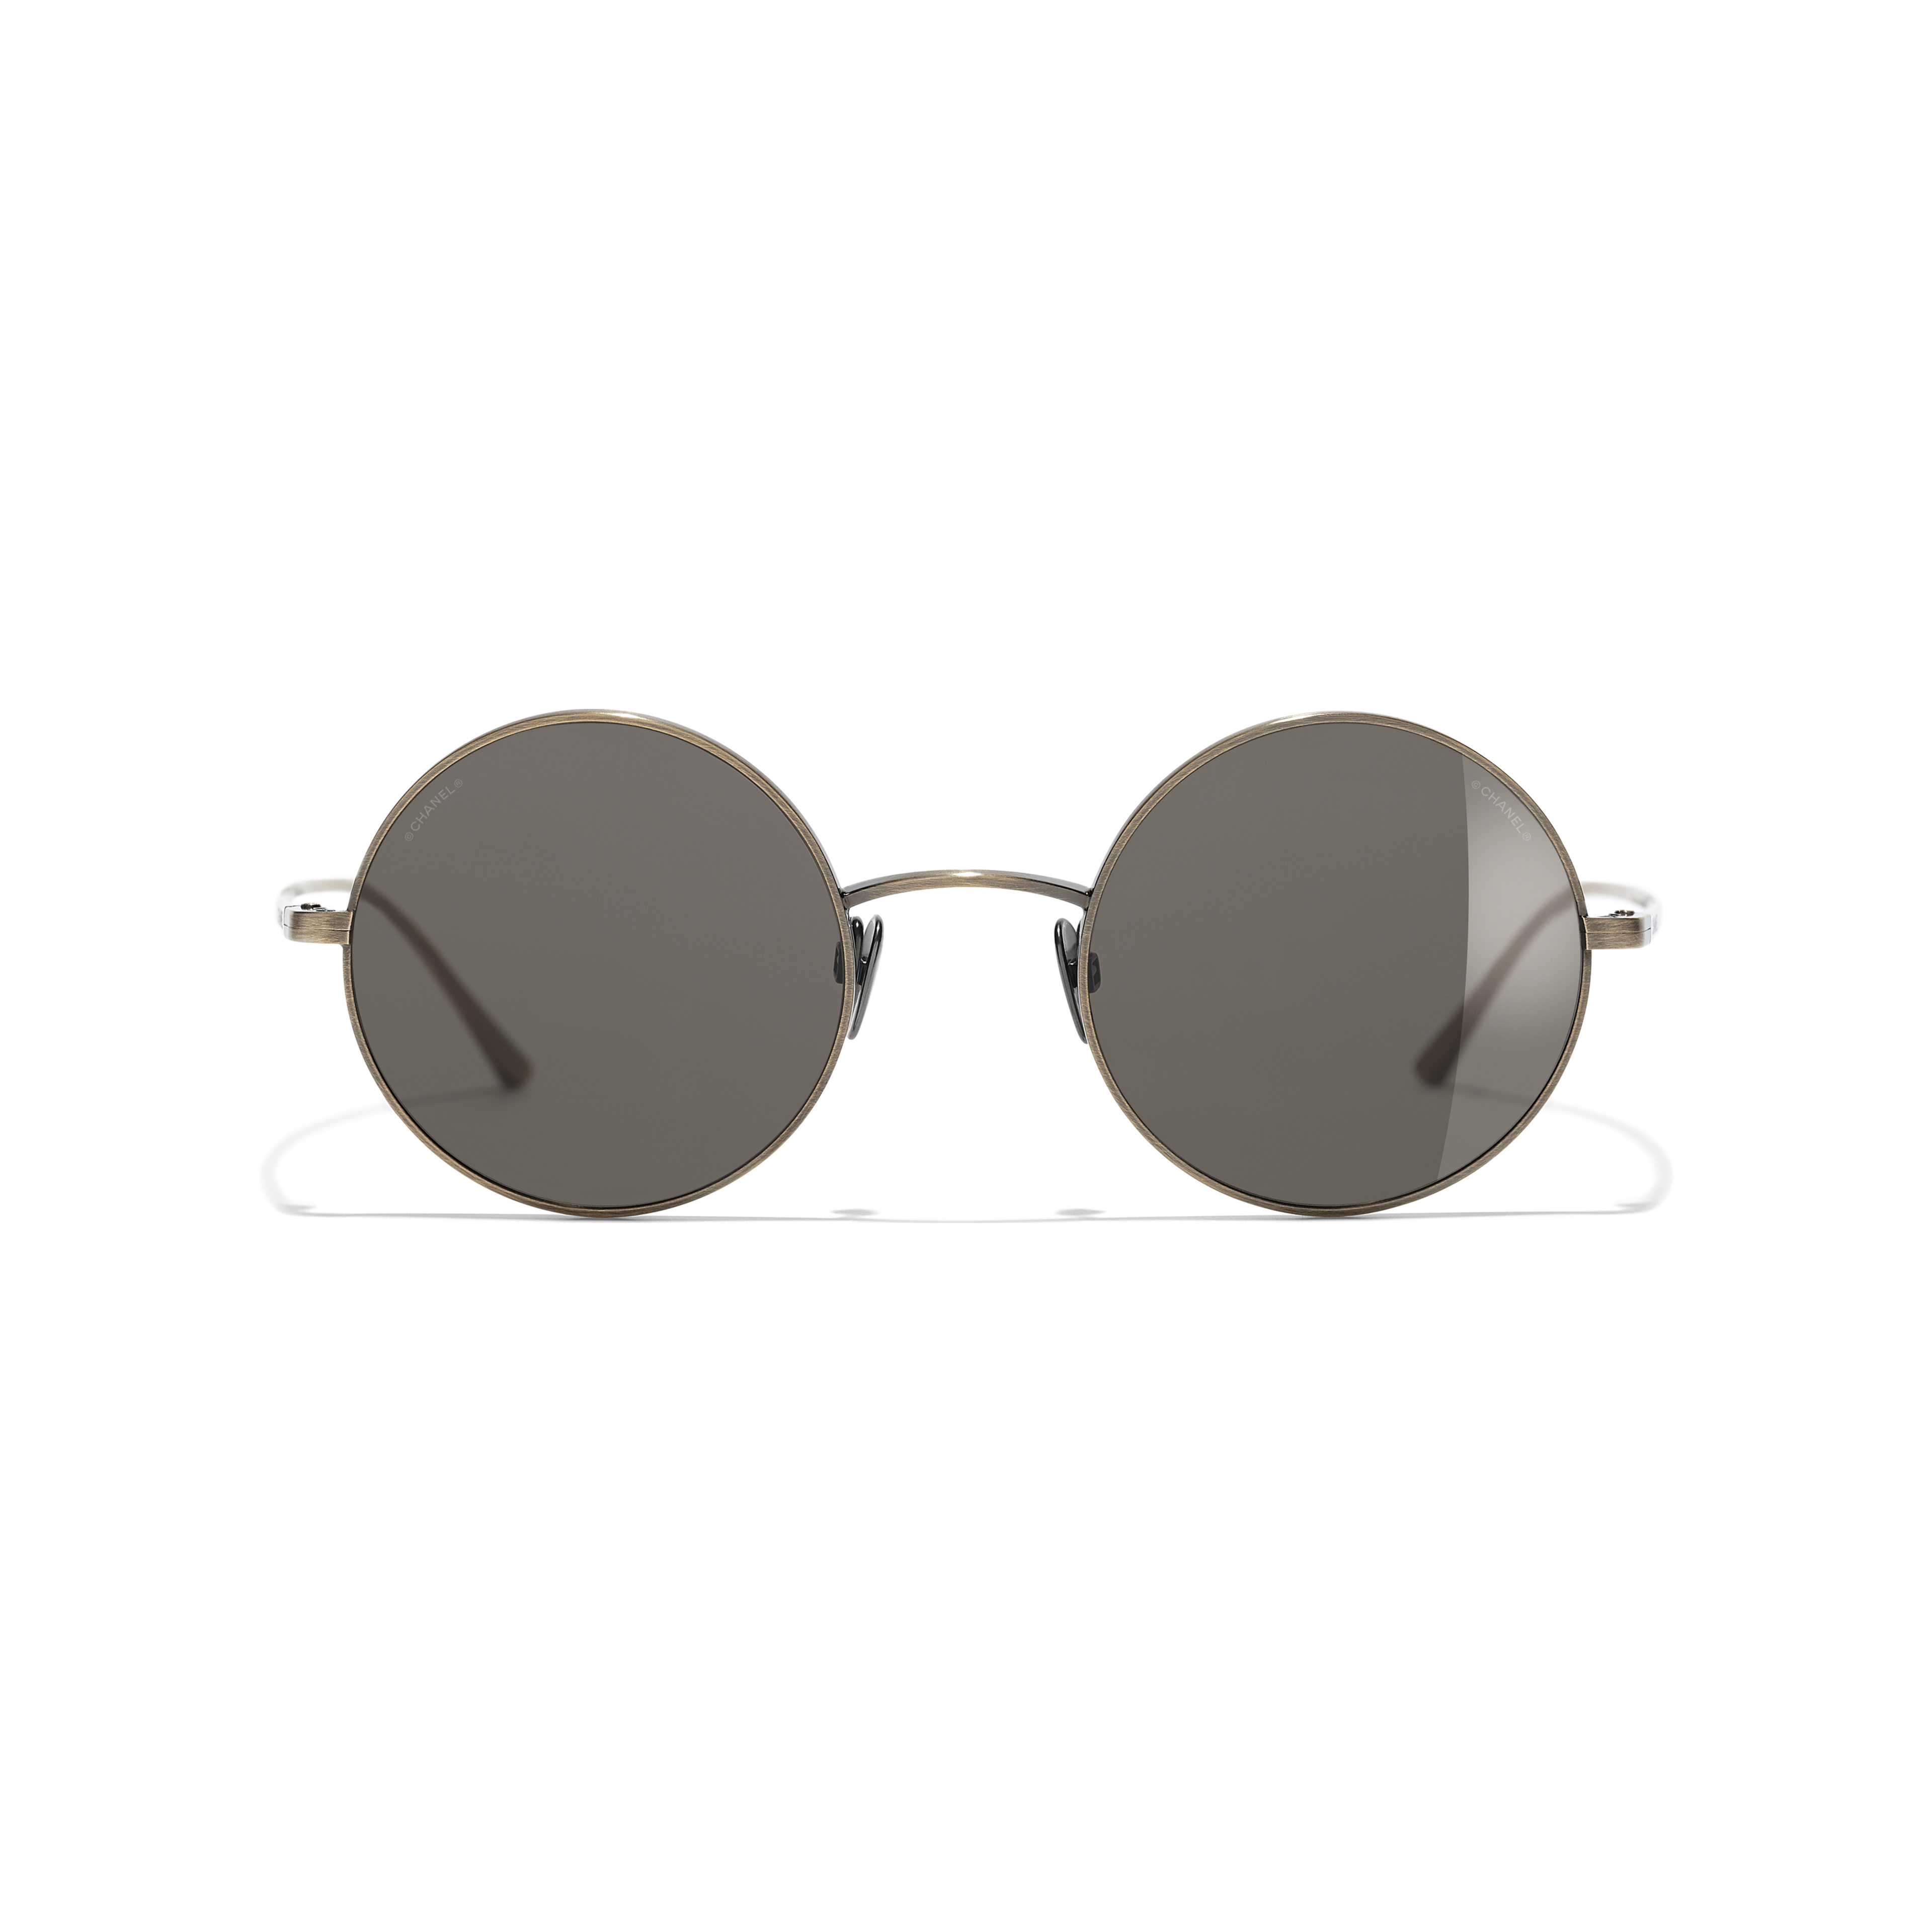 Round Sunglasses - Gold - Titanium - Alternative view - see full sized version